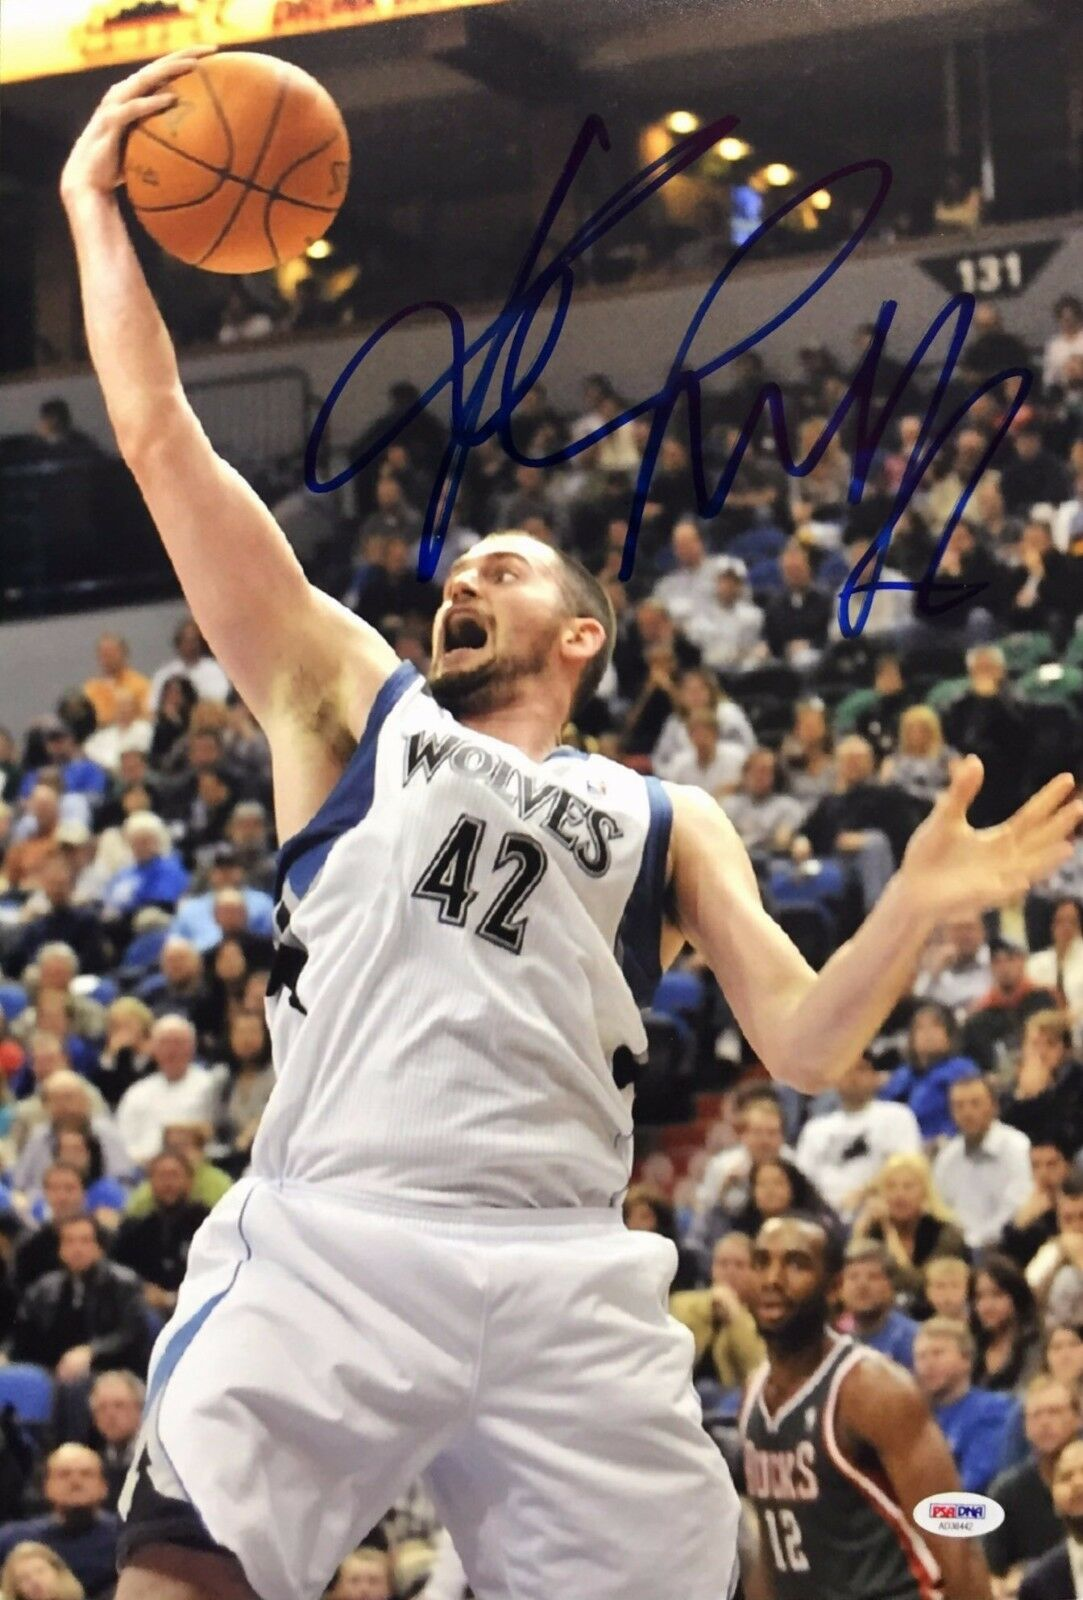 Kevin Love Signed Minnesota Timberwolves Basketball 12x18 Photo PSA AD38442